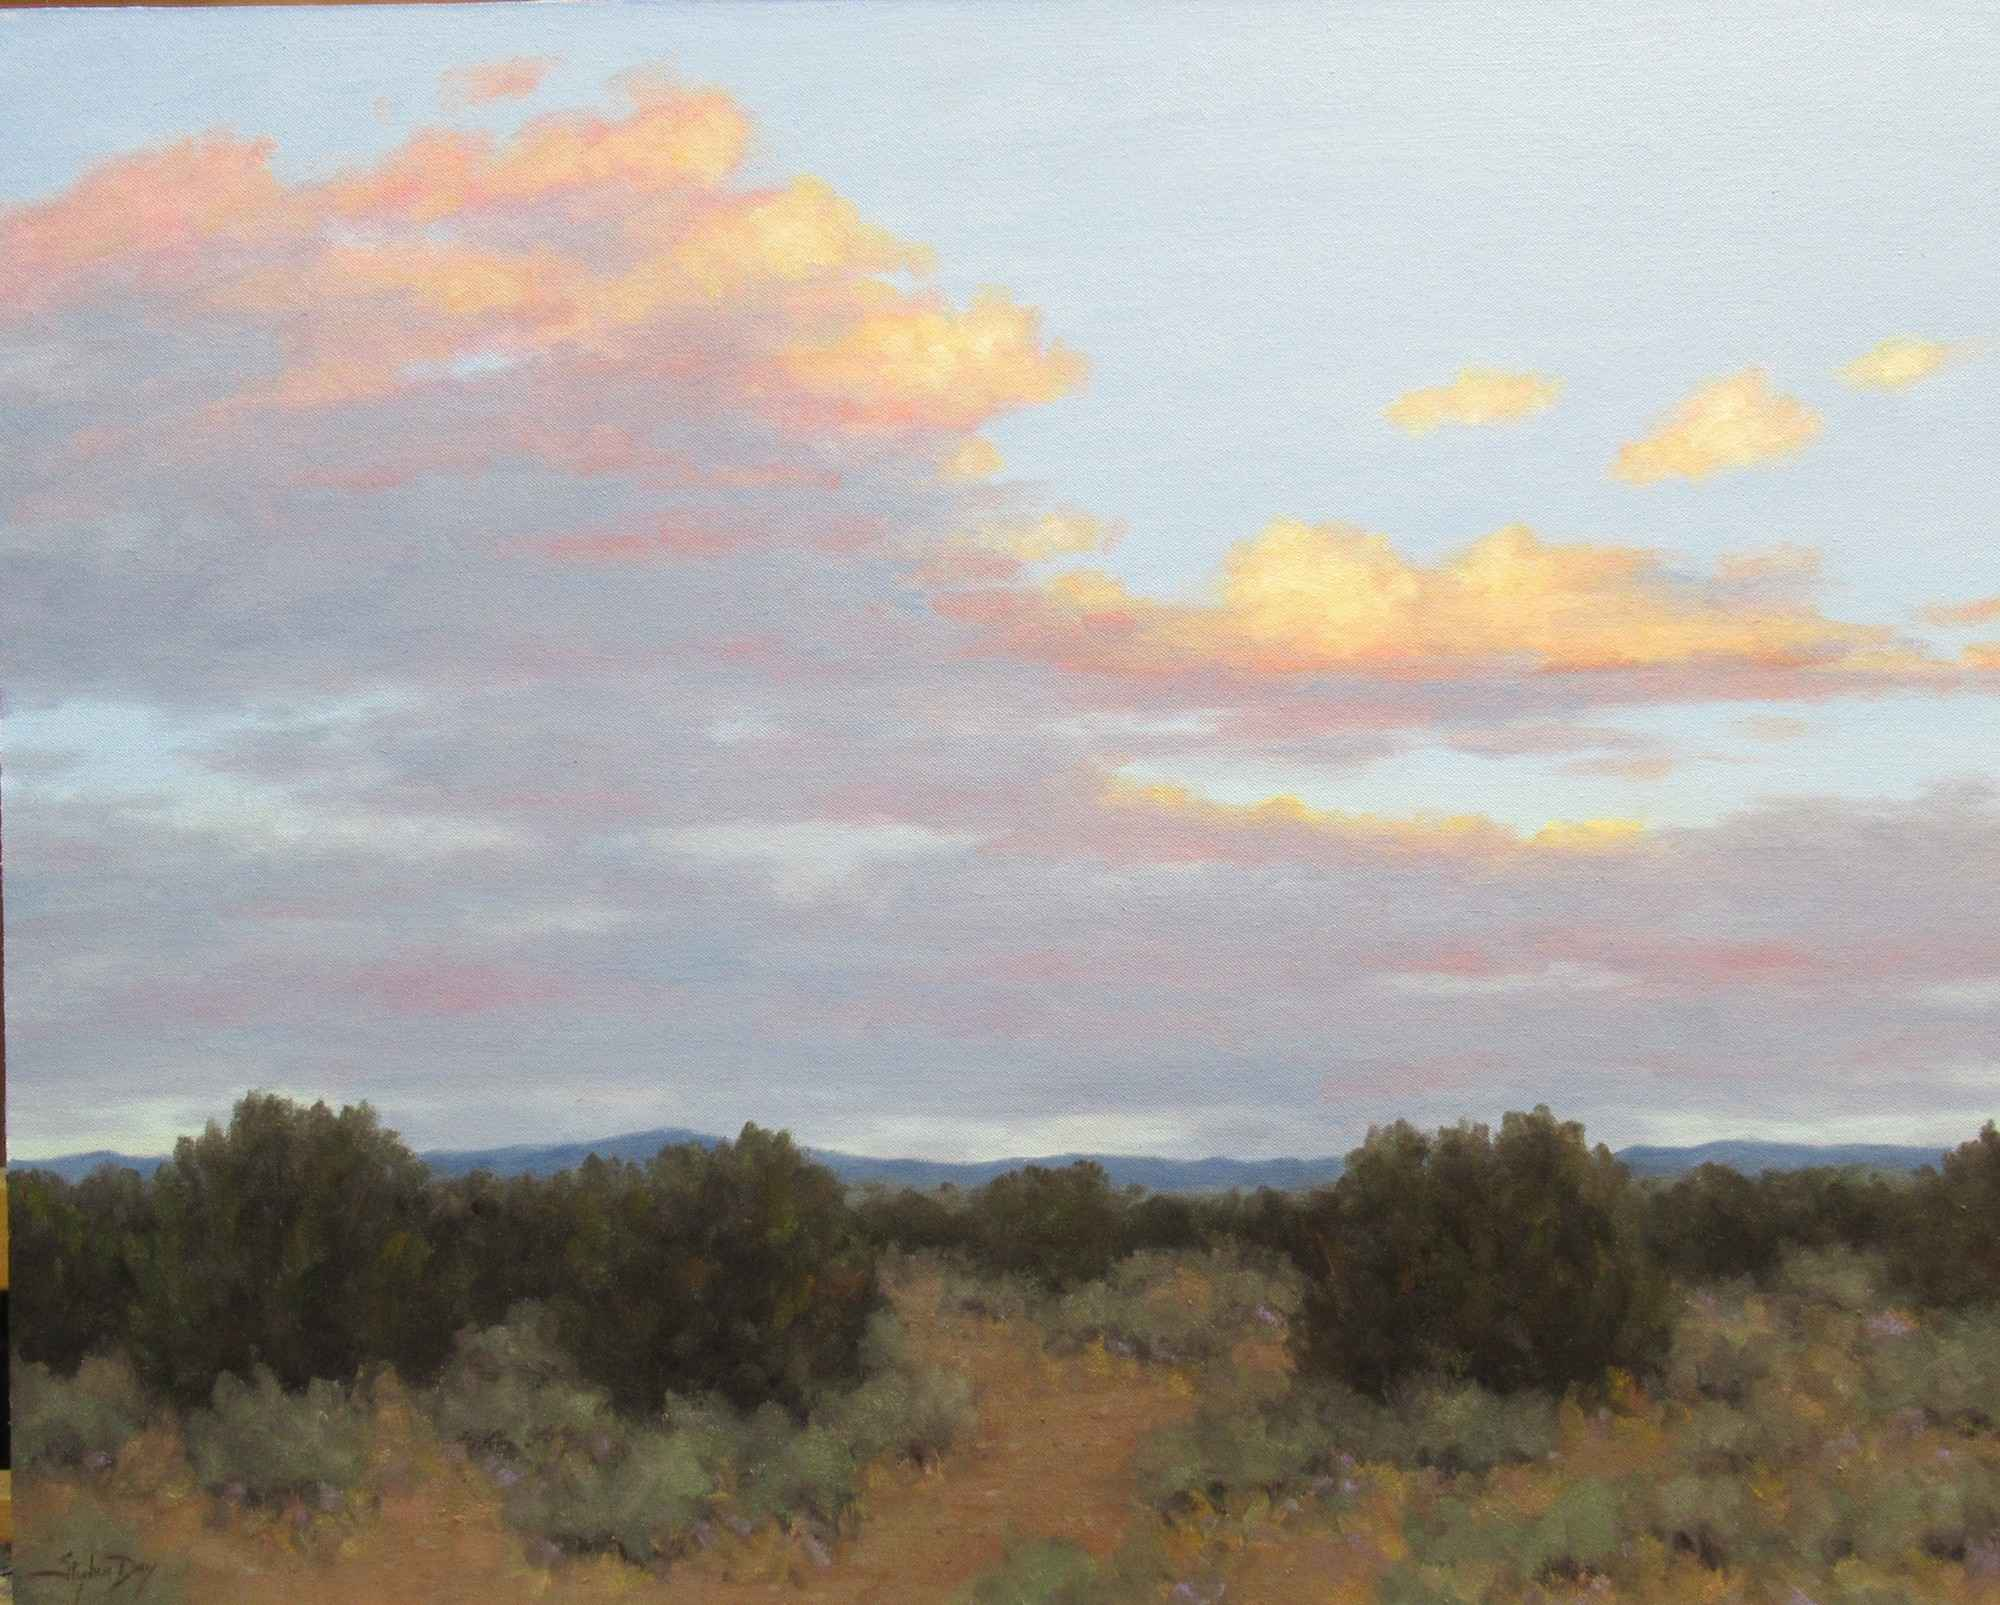 Evening - Looking East by  Stephen Day - Masterpiece Online